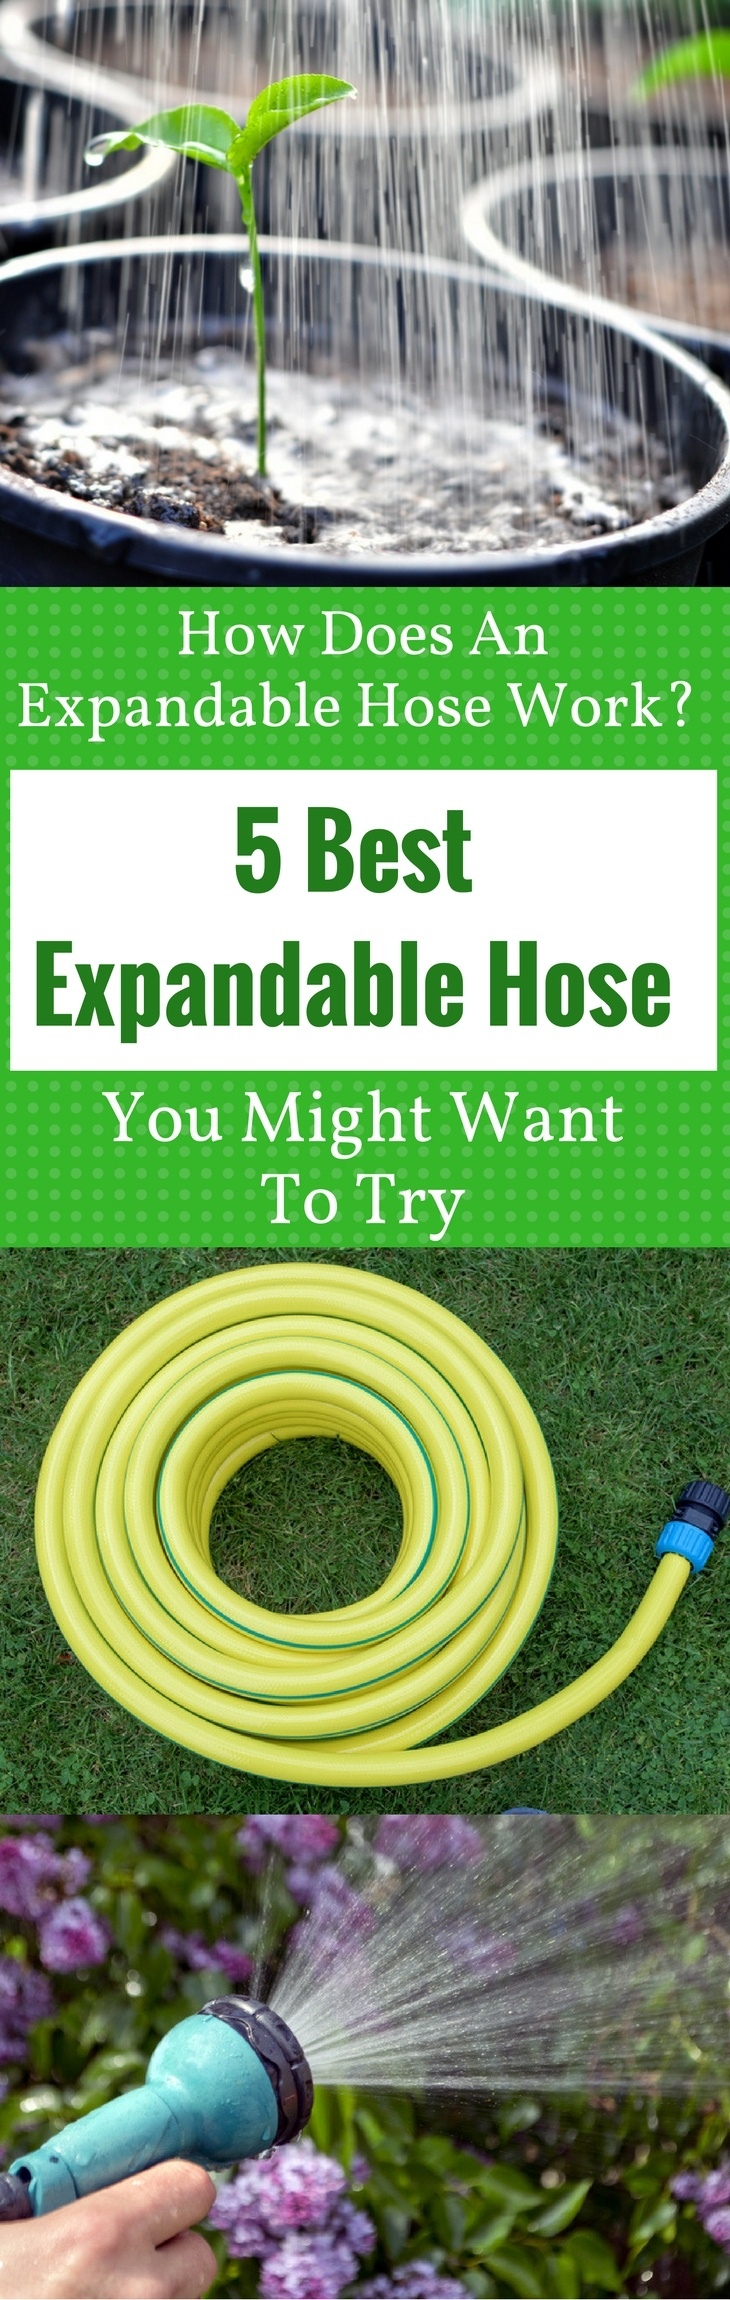 5 Best Expandable Hose You Might Want To Try pin it